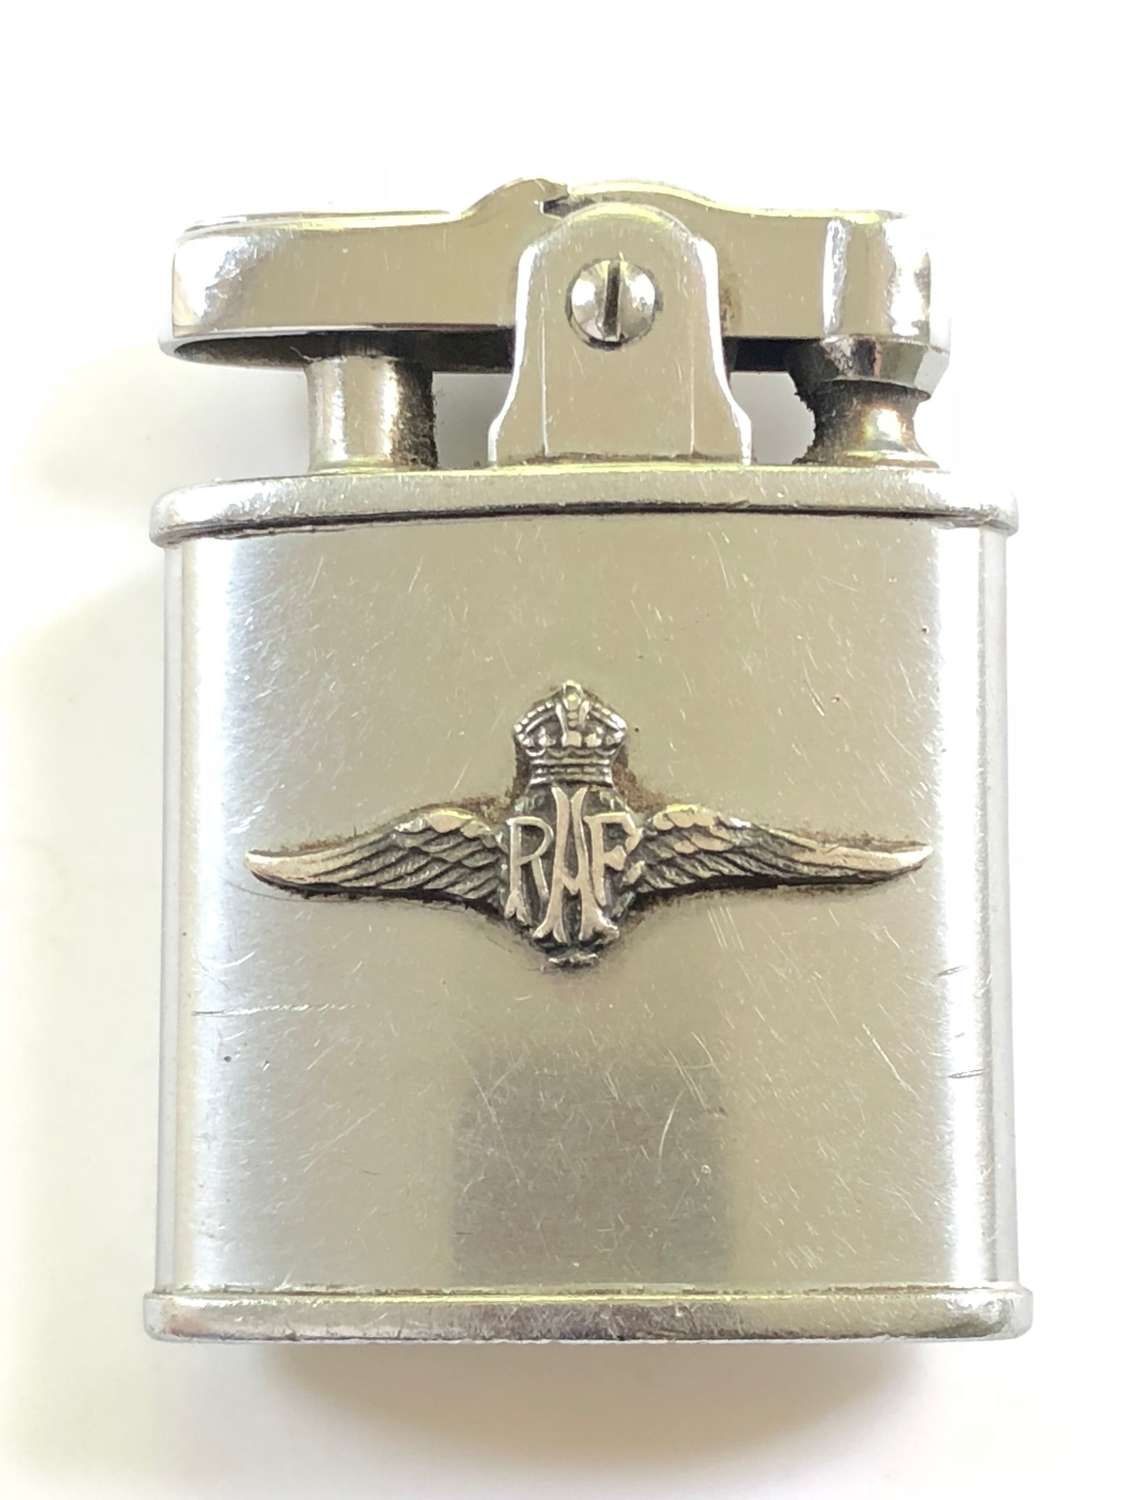 WW2 Style RAF Cigarette Lighter by Ronson.